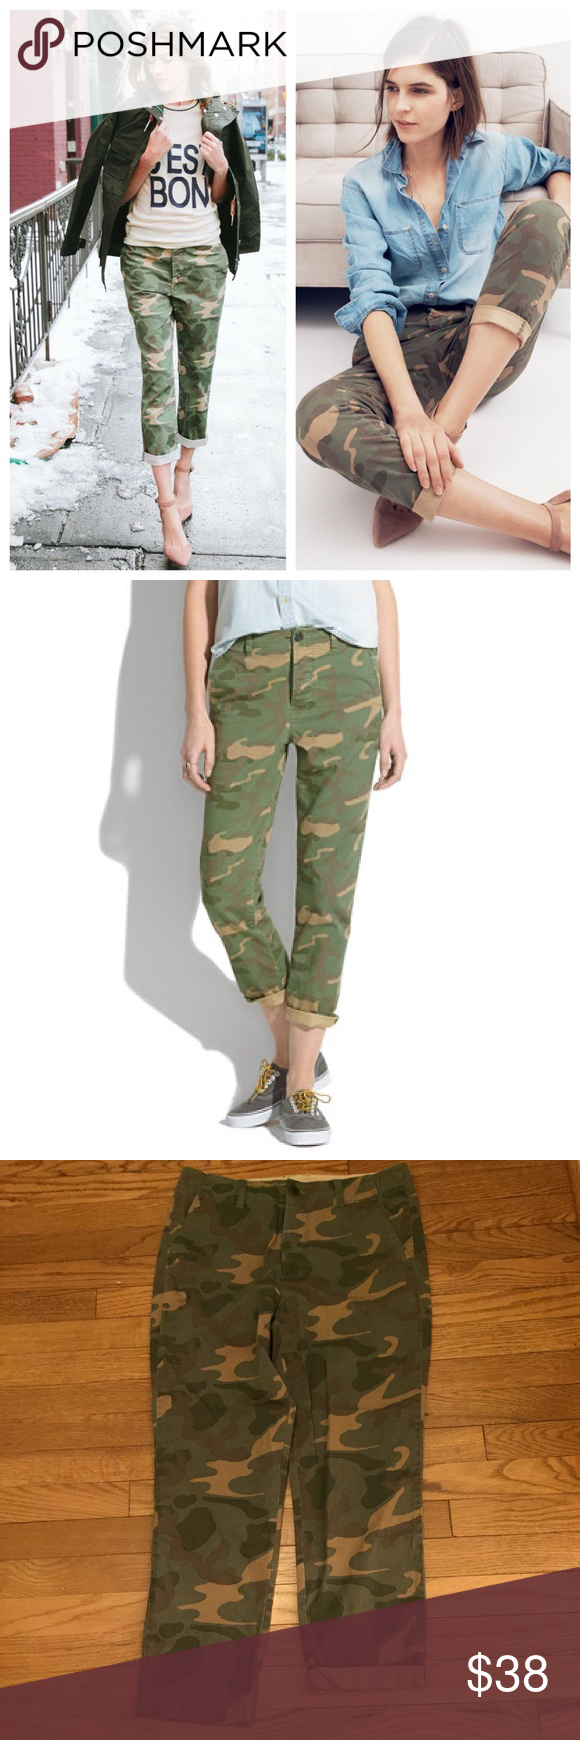 """Madewell Cropped Rivington Trouser, sz 28 NWT! So versatile, can be worn rolled/cuffed or down. 26.5"""" inseam Madewell Pants"""